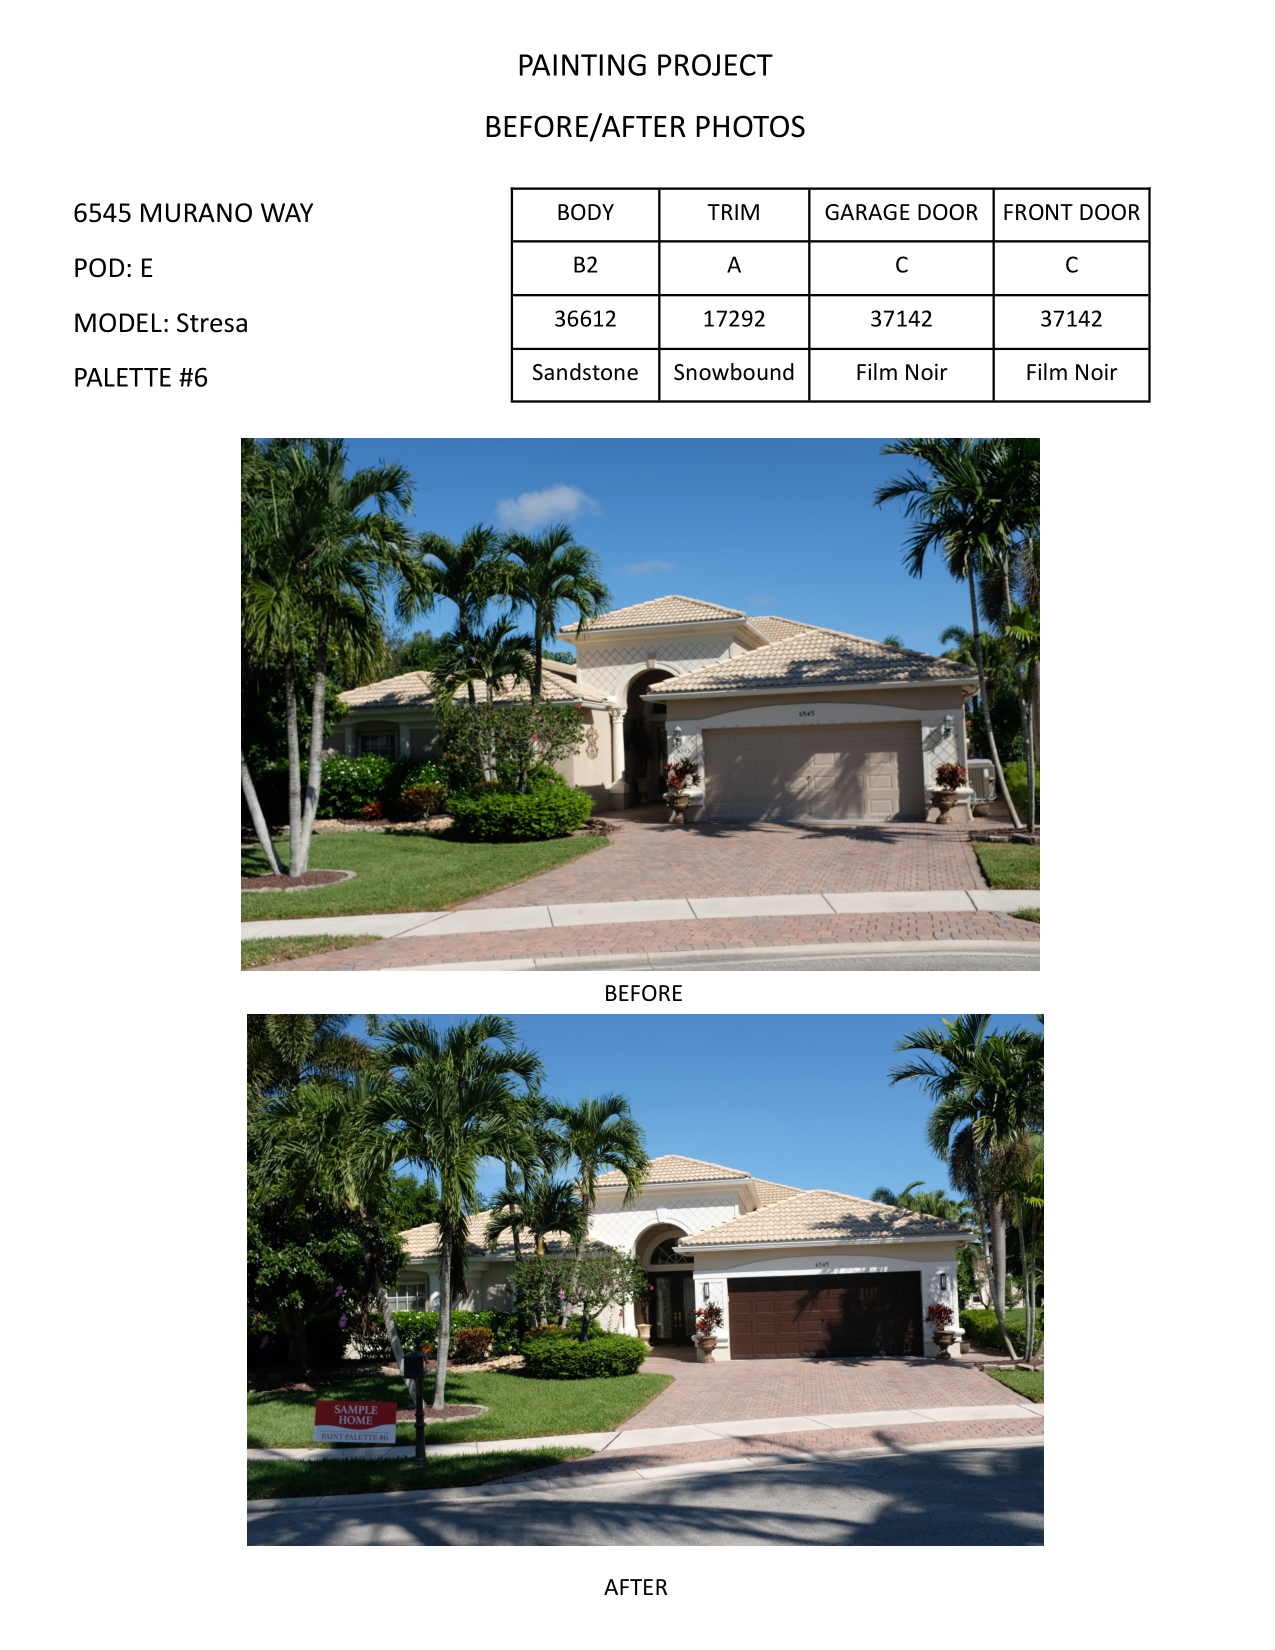 b4aftersample homes pictures-7.png